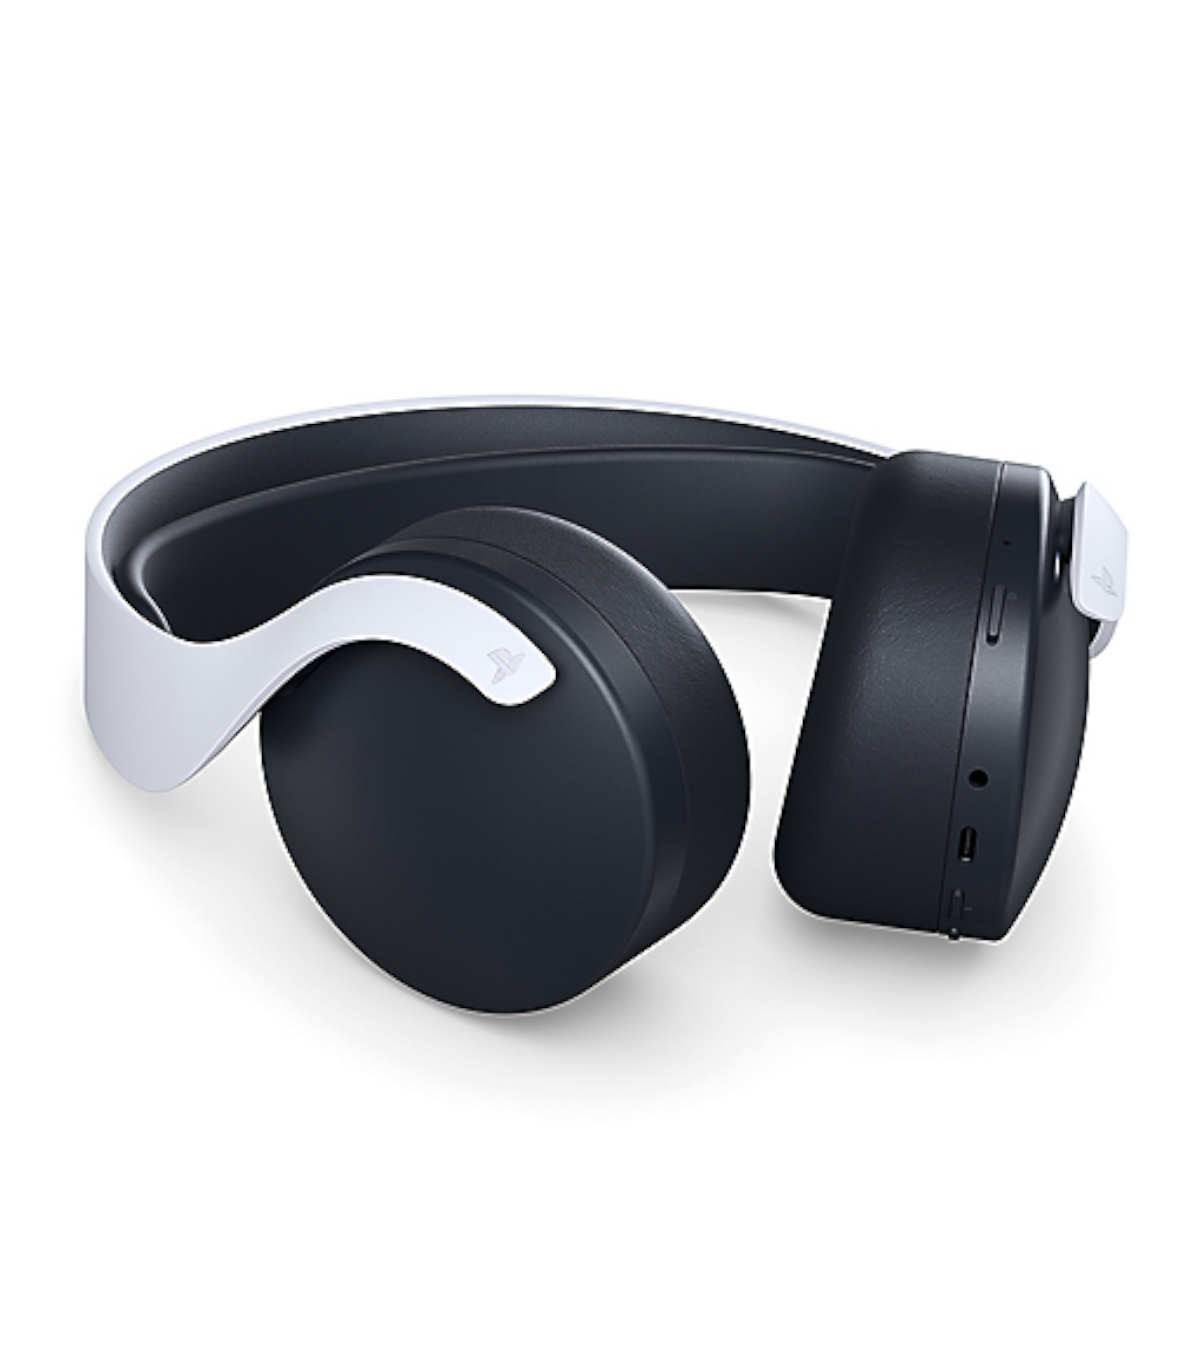 هدست PULSE 3D Wireless Headset برای PS5